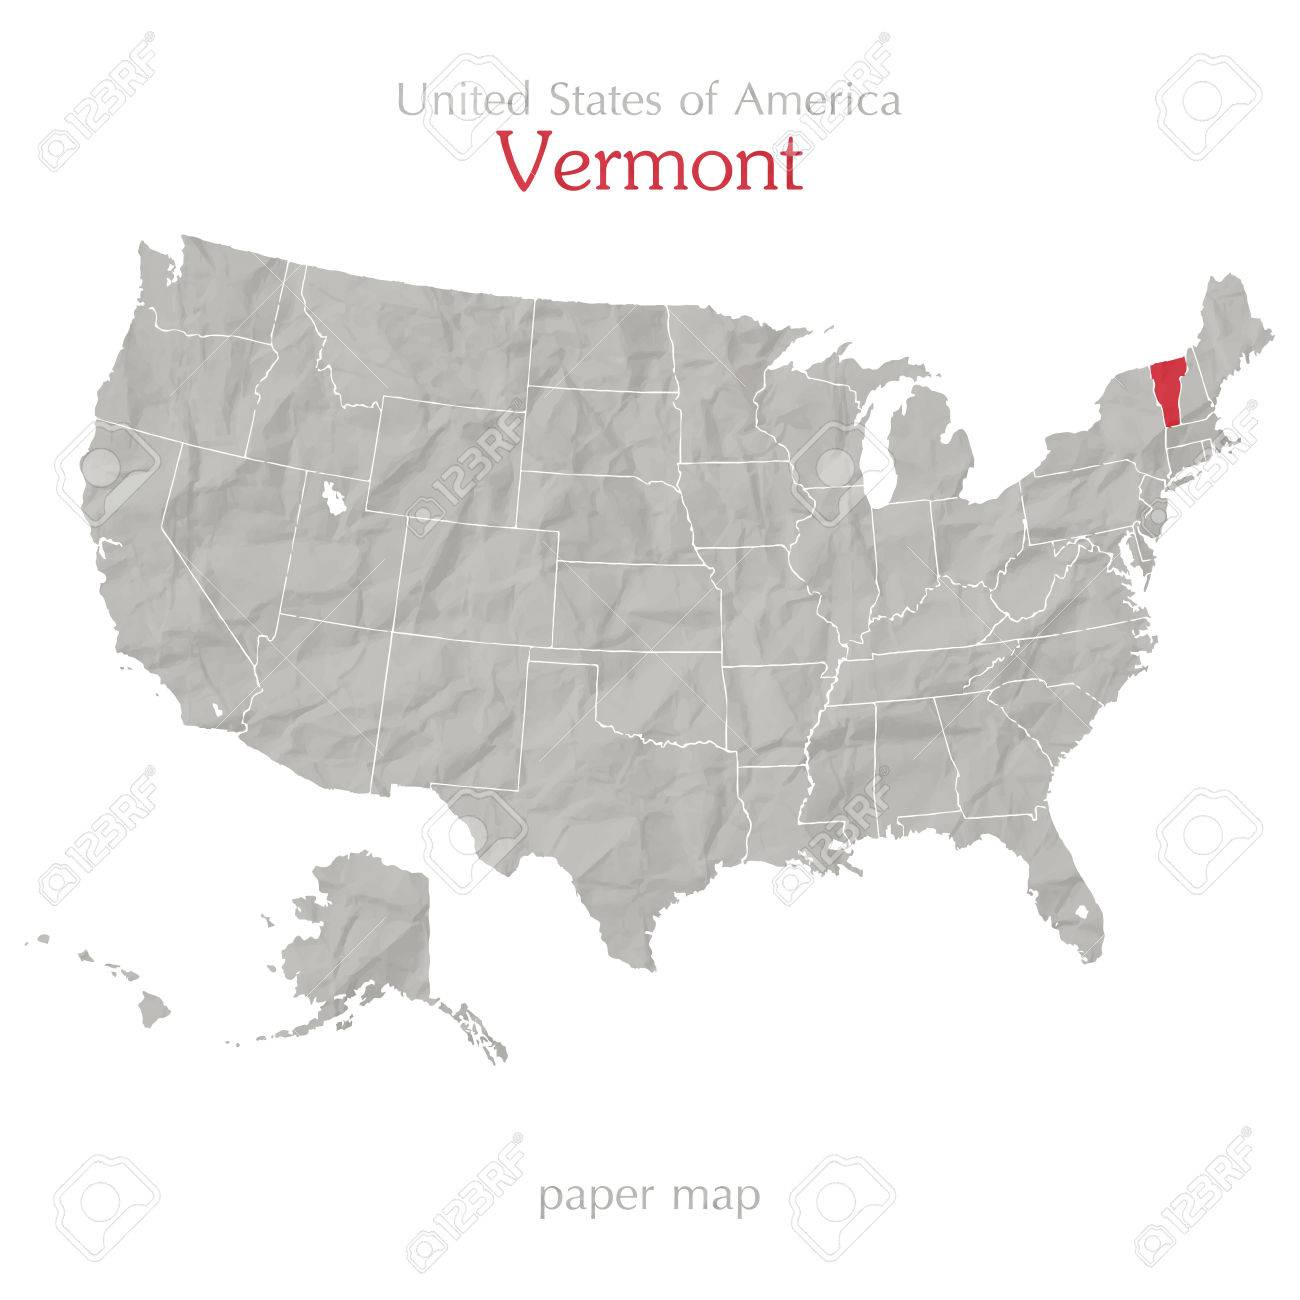 The map legend is sometimes called the map key. United States Of America Map And Vermont State Territory On Textured Paper Royalty Free Cliparts Vectors And Stock Illustration Image 28257321